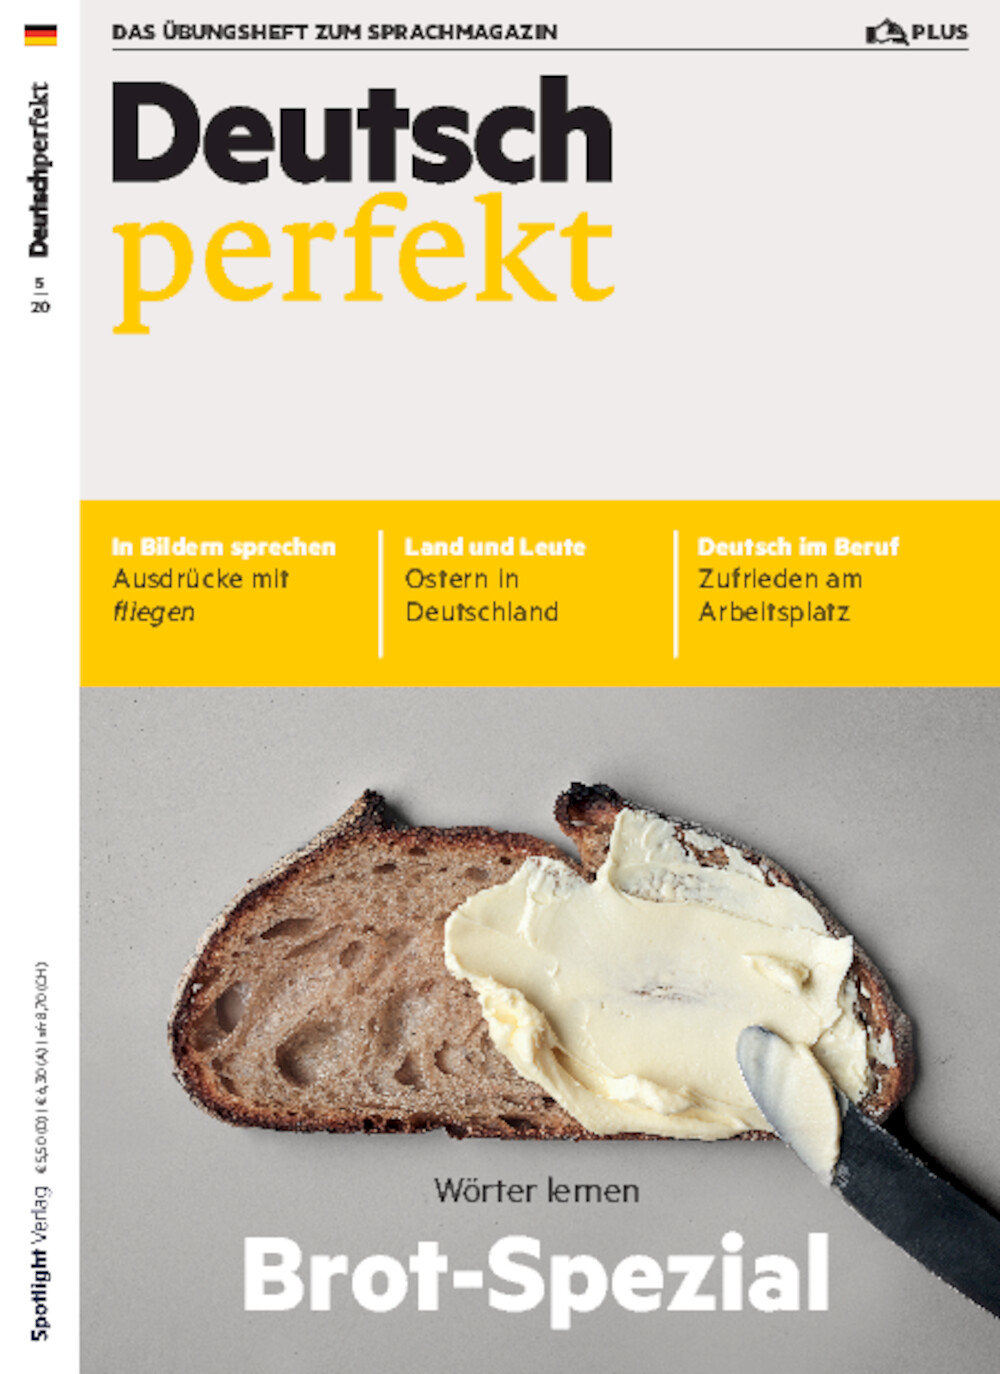 Deutsch perfekt PLUS ePaper 05/2020